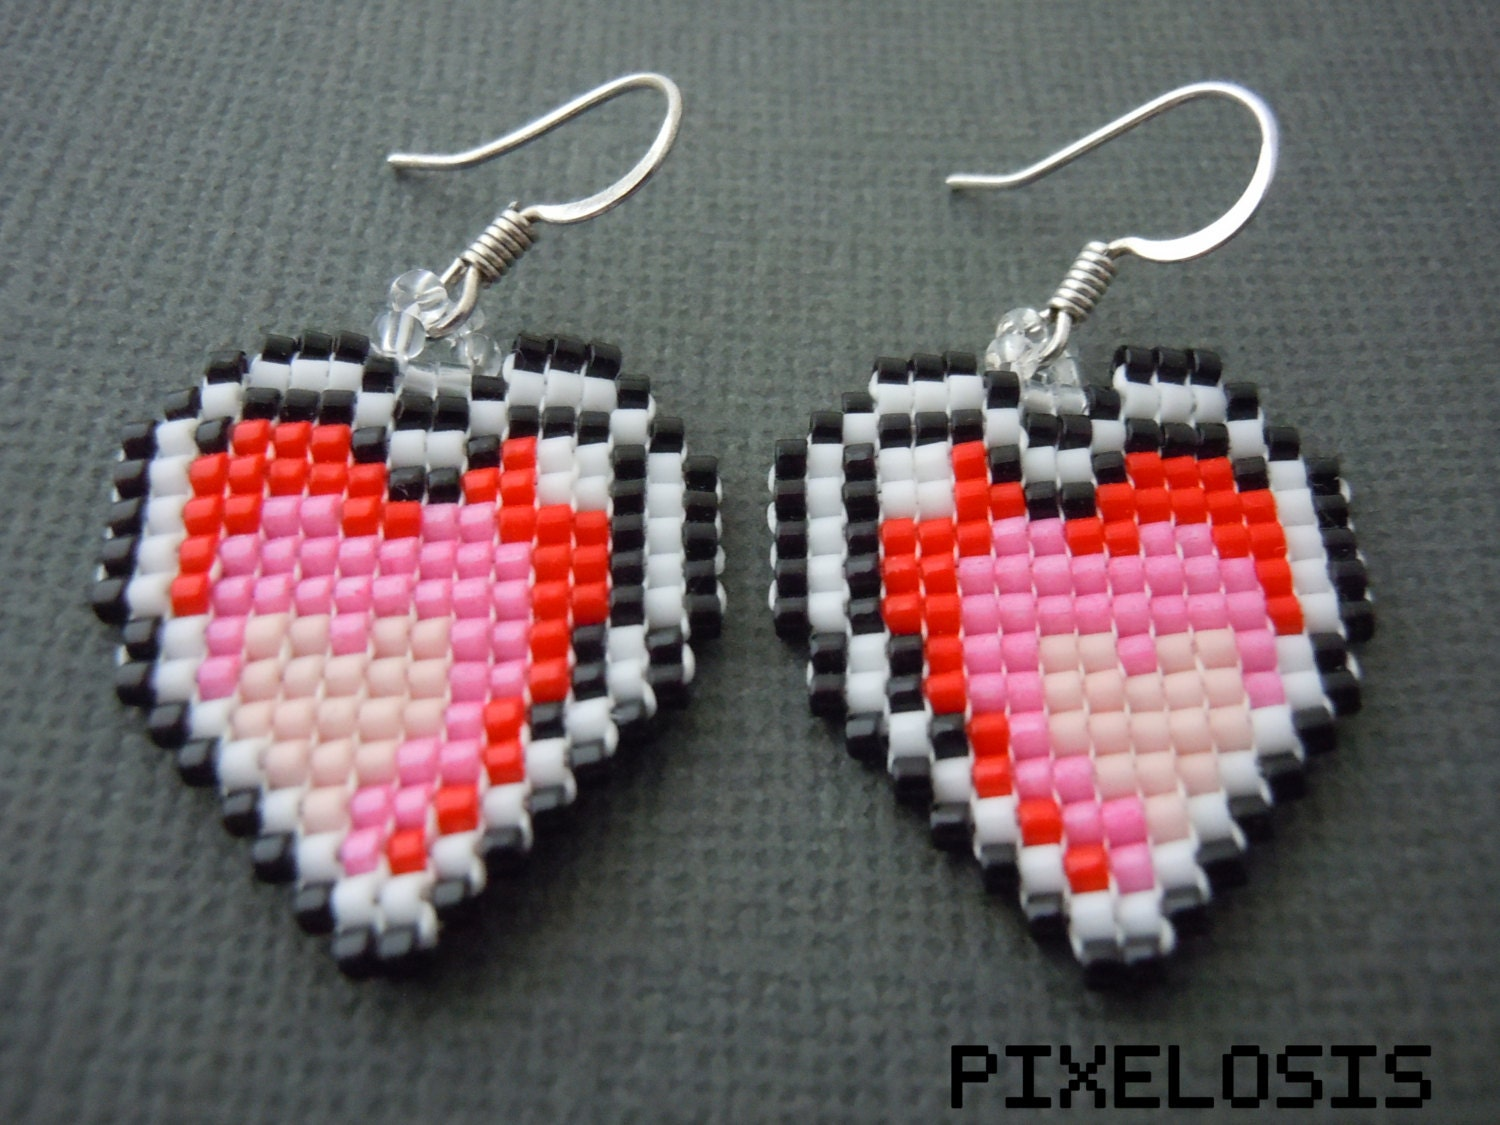 Heart container necklace seed bead video game jewelry by pixelosis